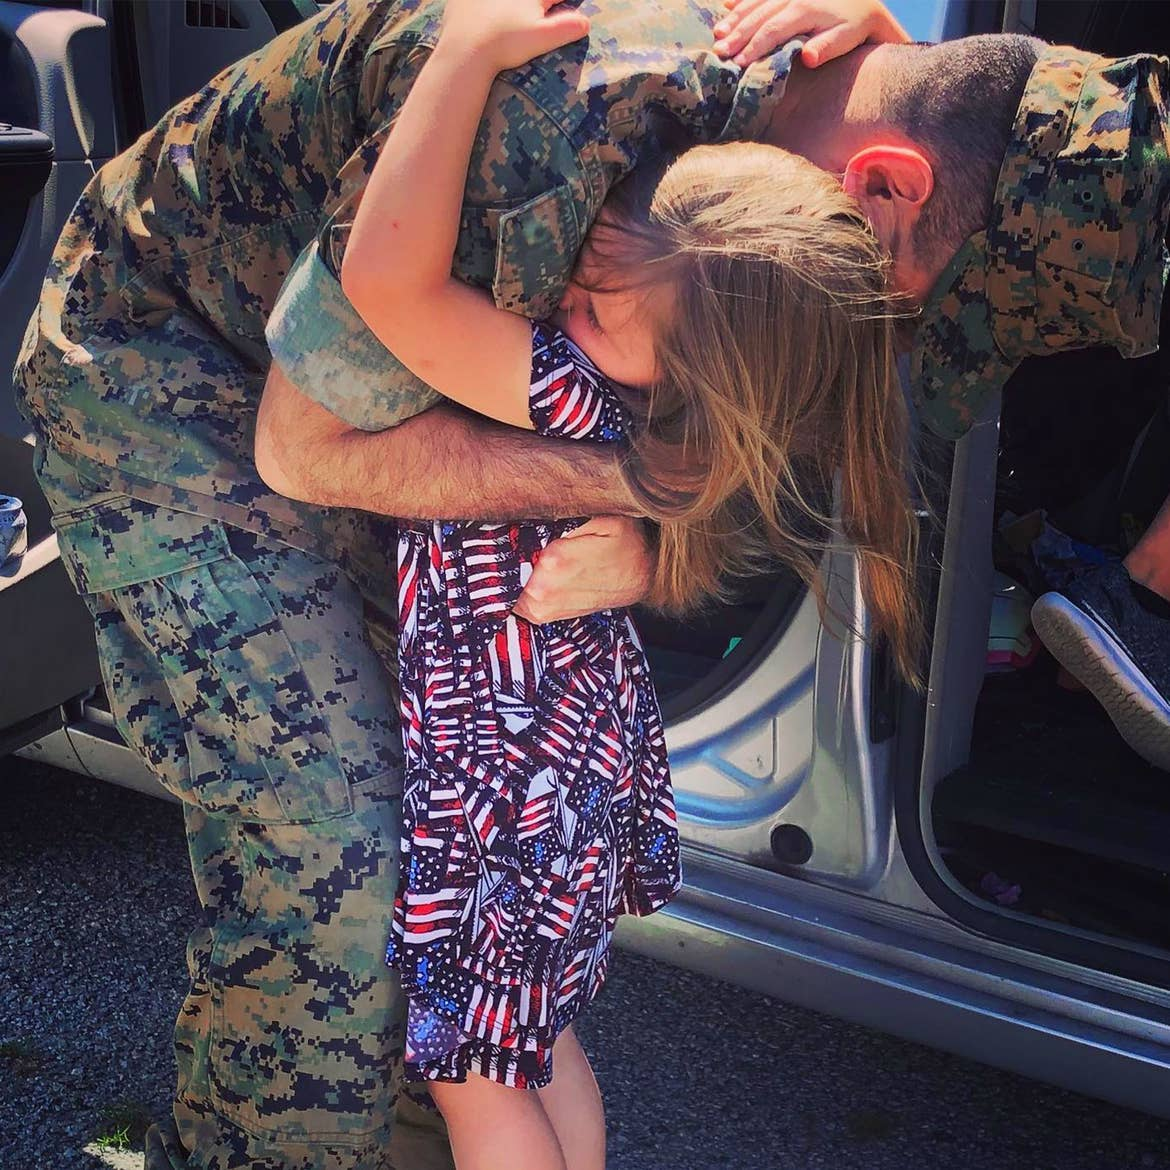 Sara Perezes youngest daughter (right) is held by her dad in his uniform as he leaves for deployment.